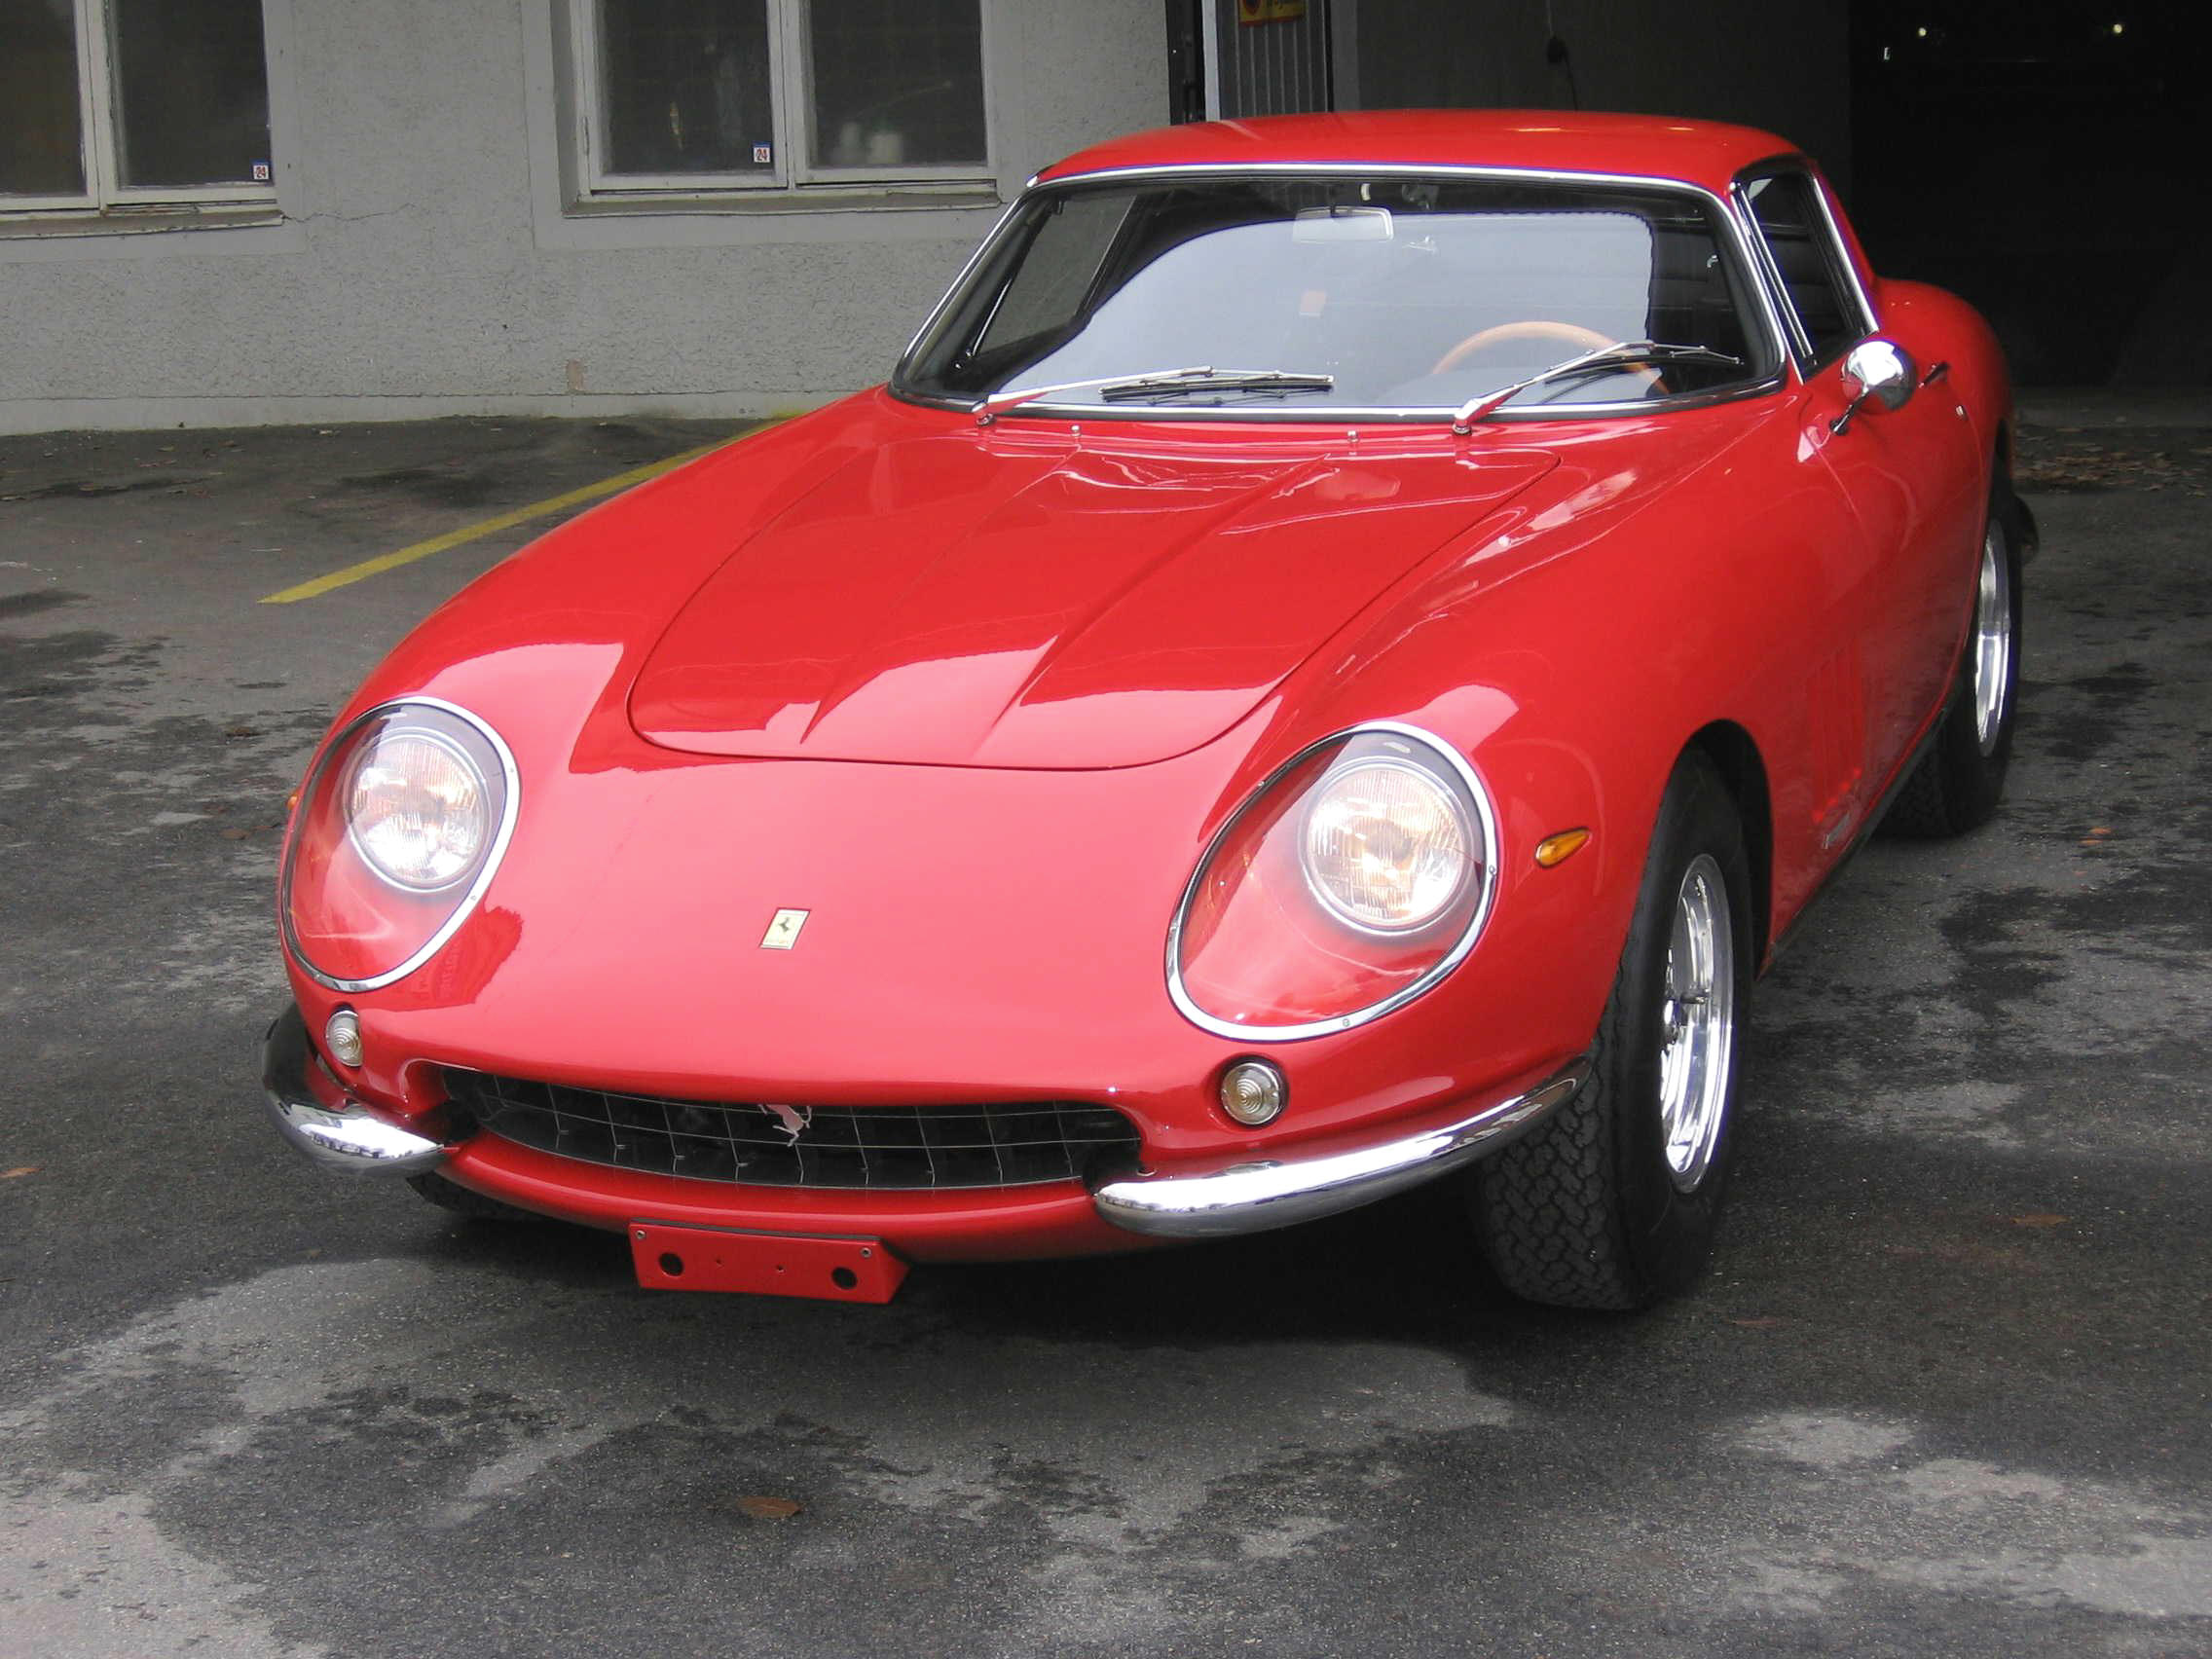 The 275 GTB/4 is one of the